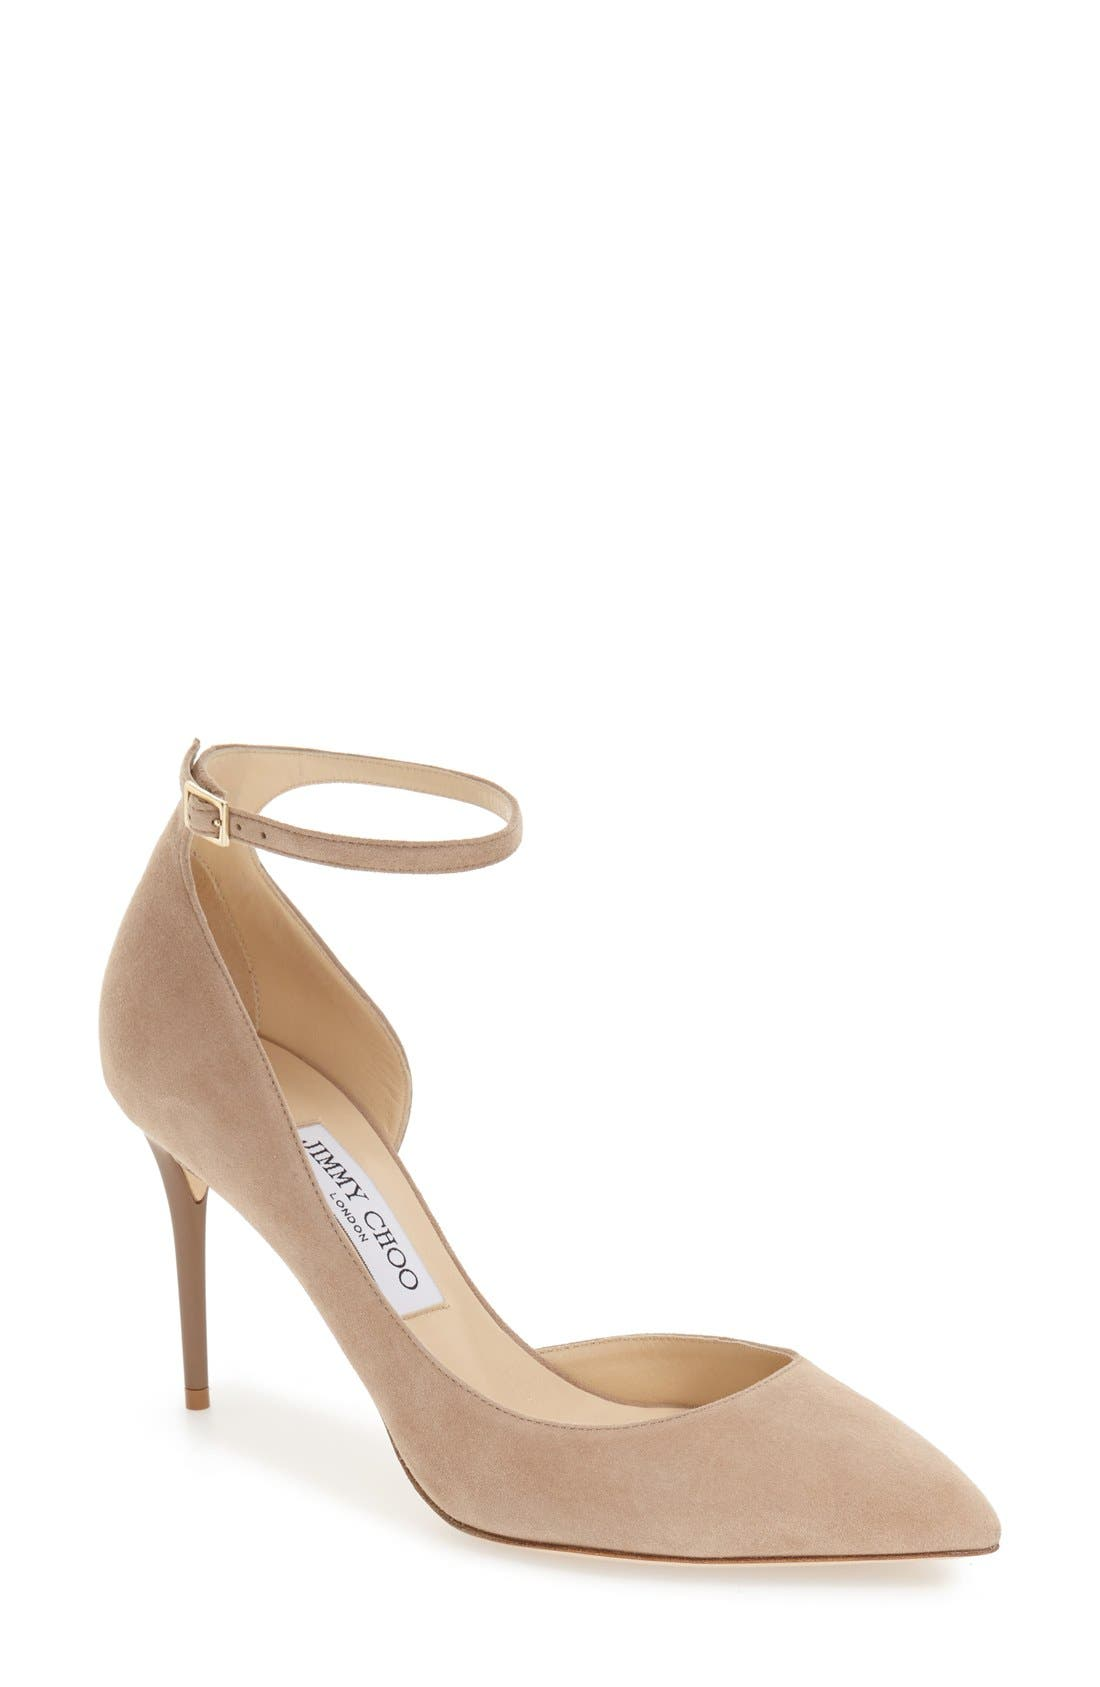 JIMMY CHOO 'Lucy' Half d'Orsay Pointy Toe Pump